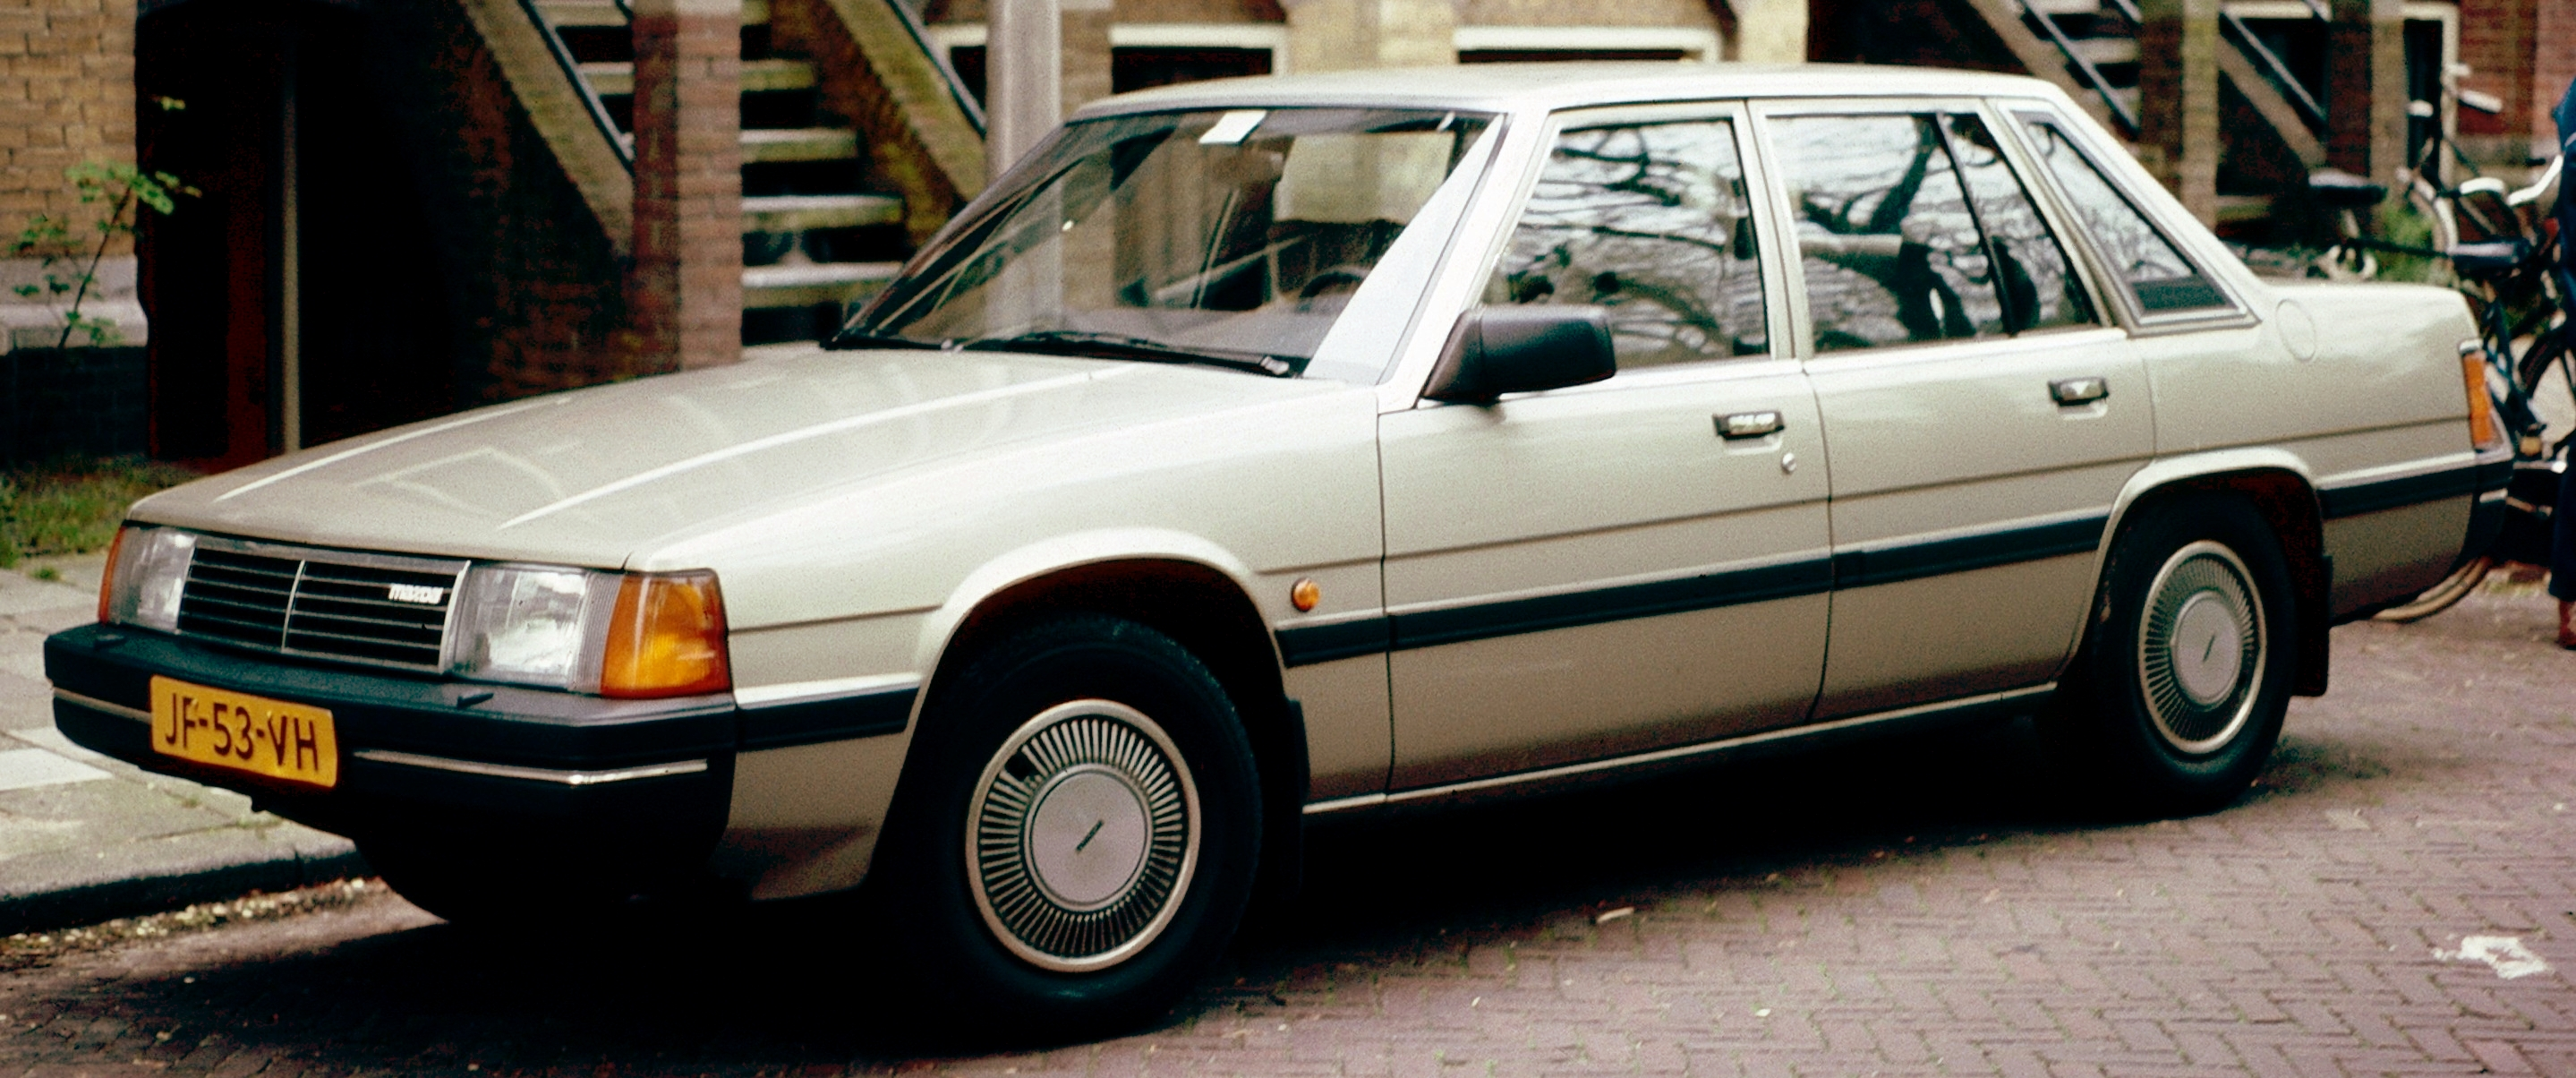 Filemazda 929 Nl 1985jpg Wikimedia Commons